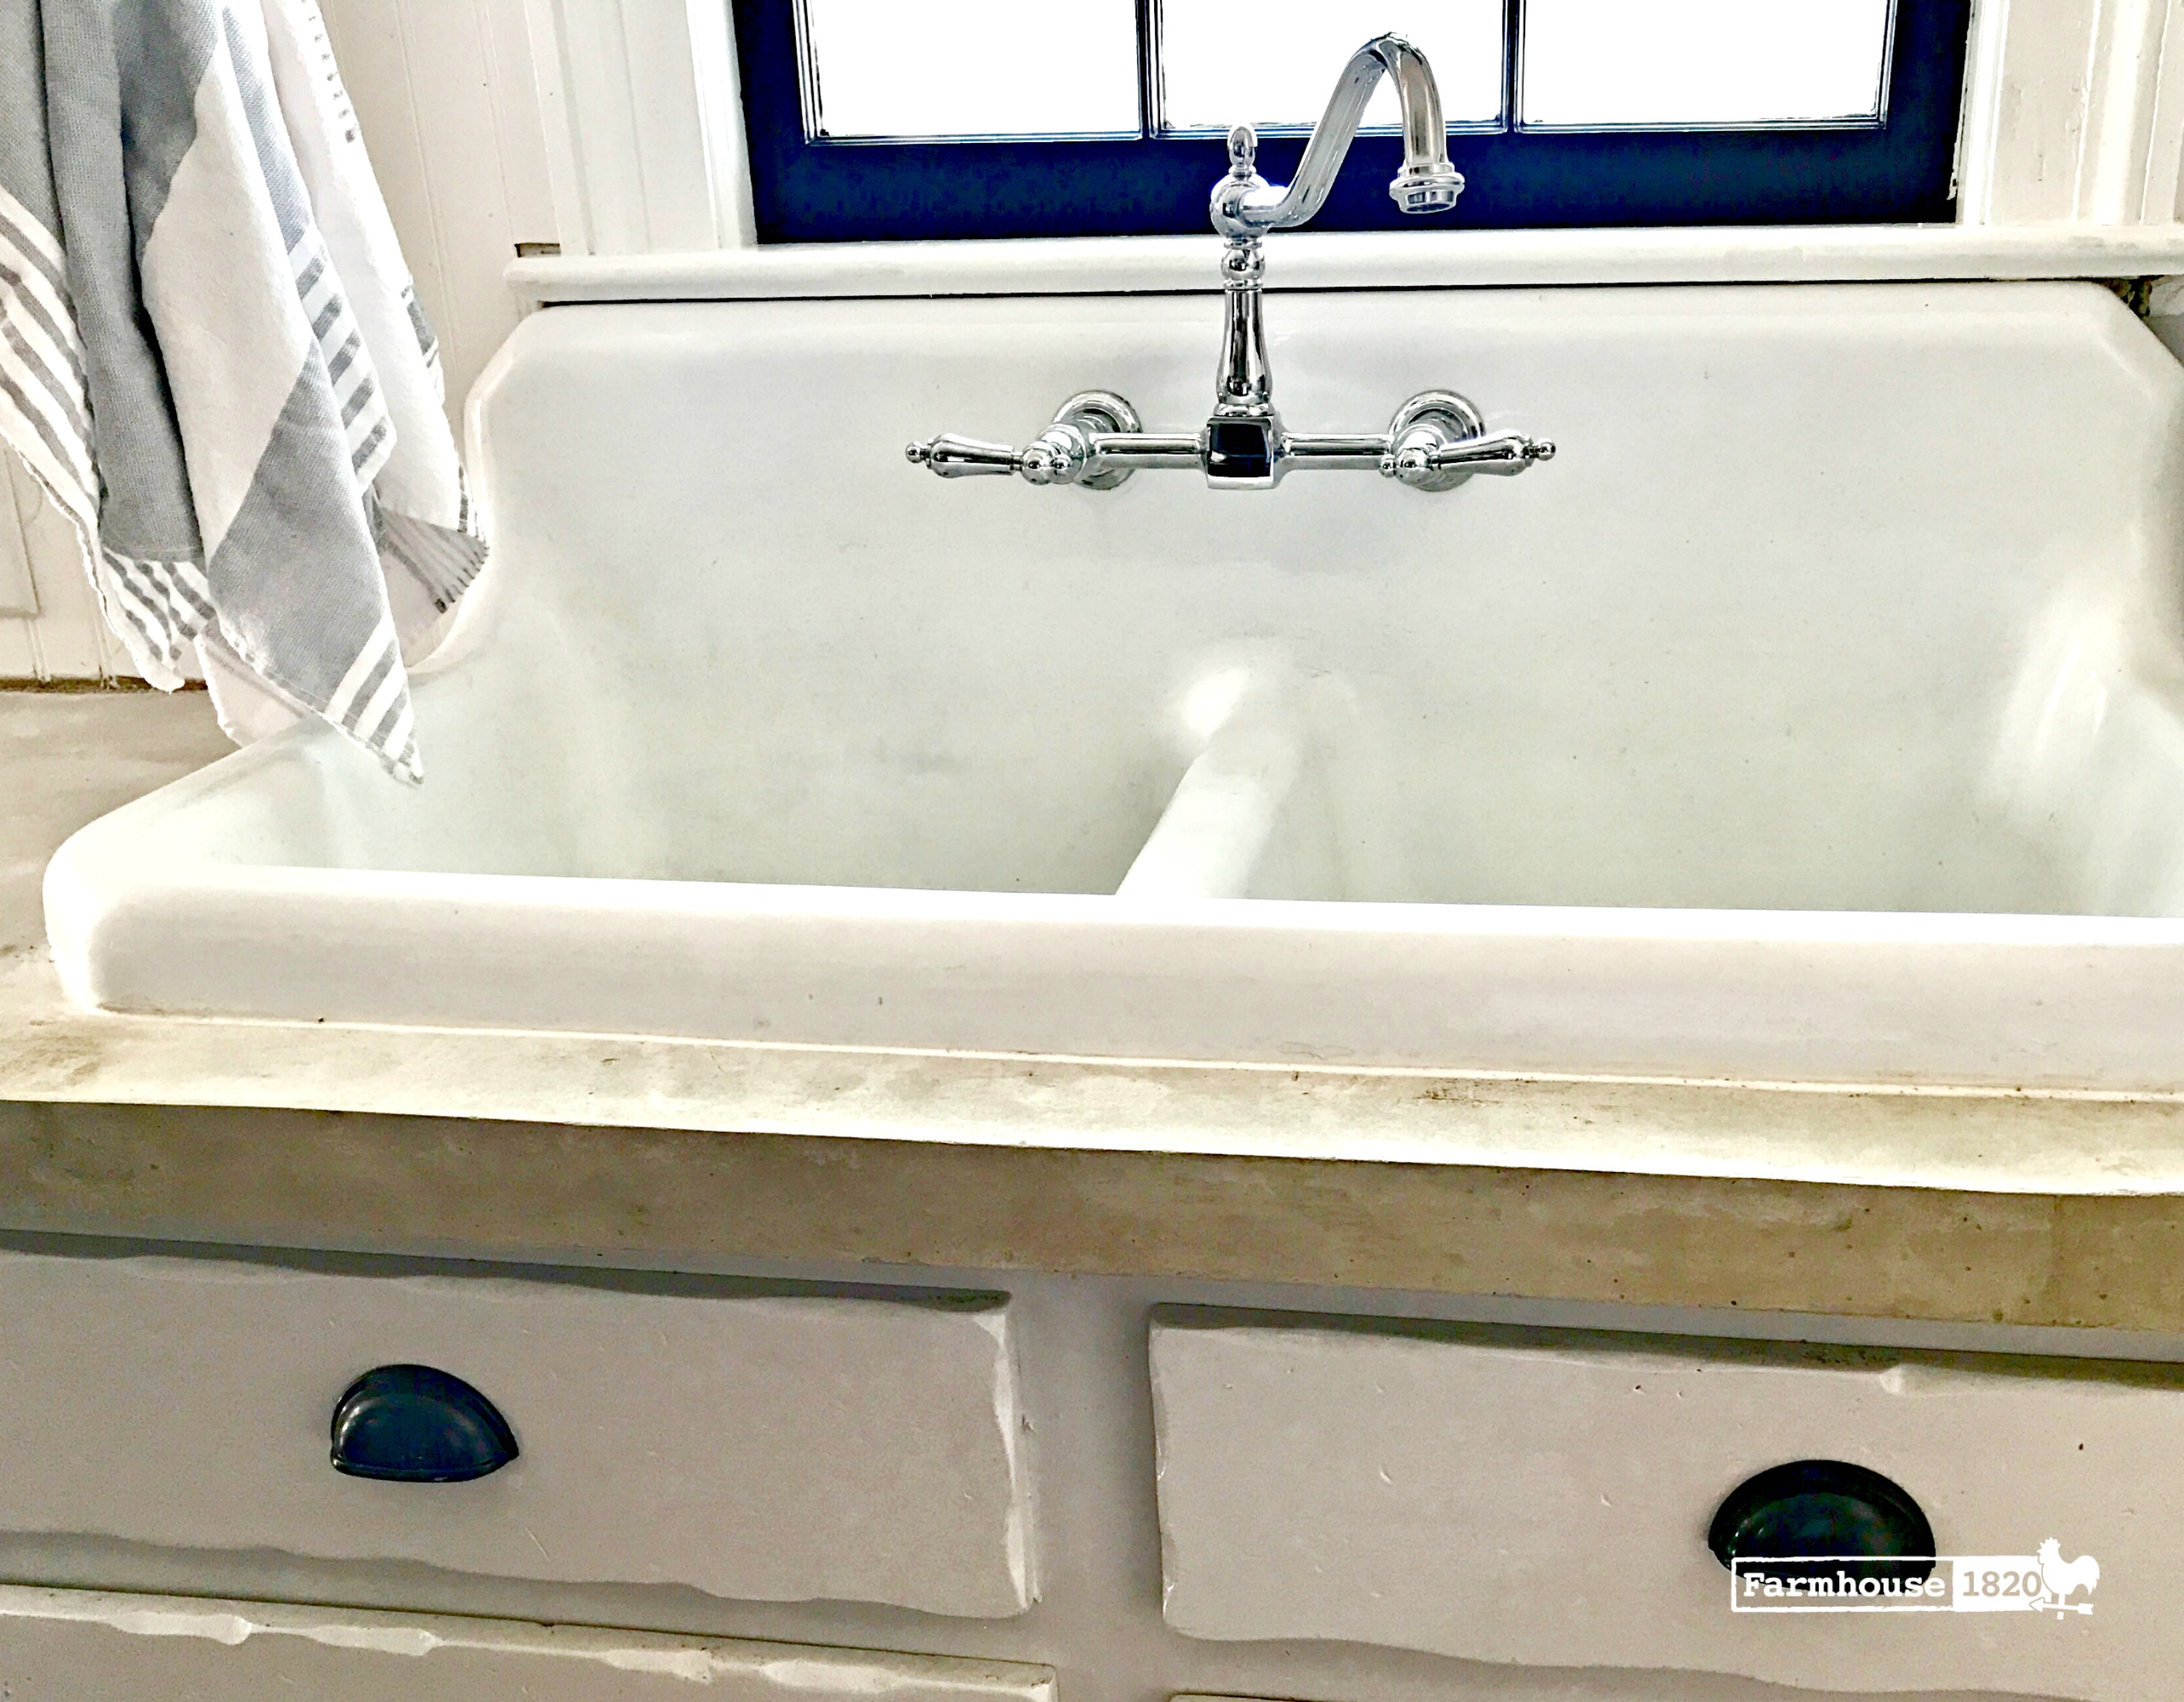 1940 farmhouse sink at farmhouse 1820